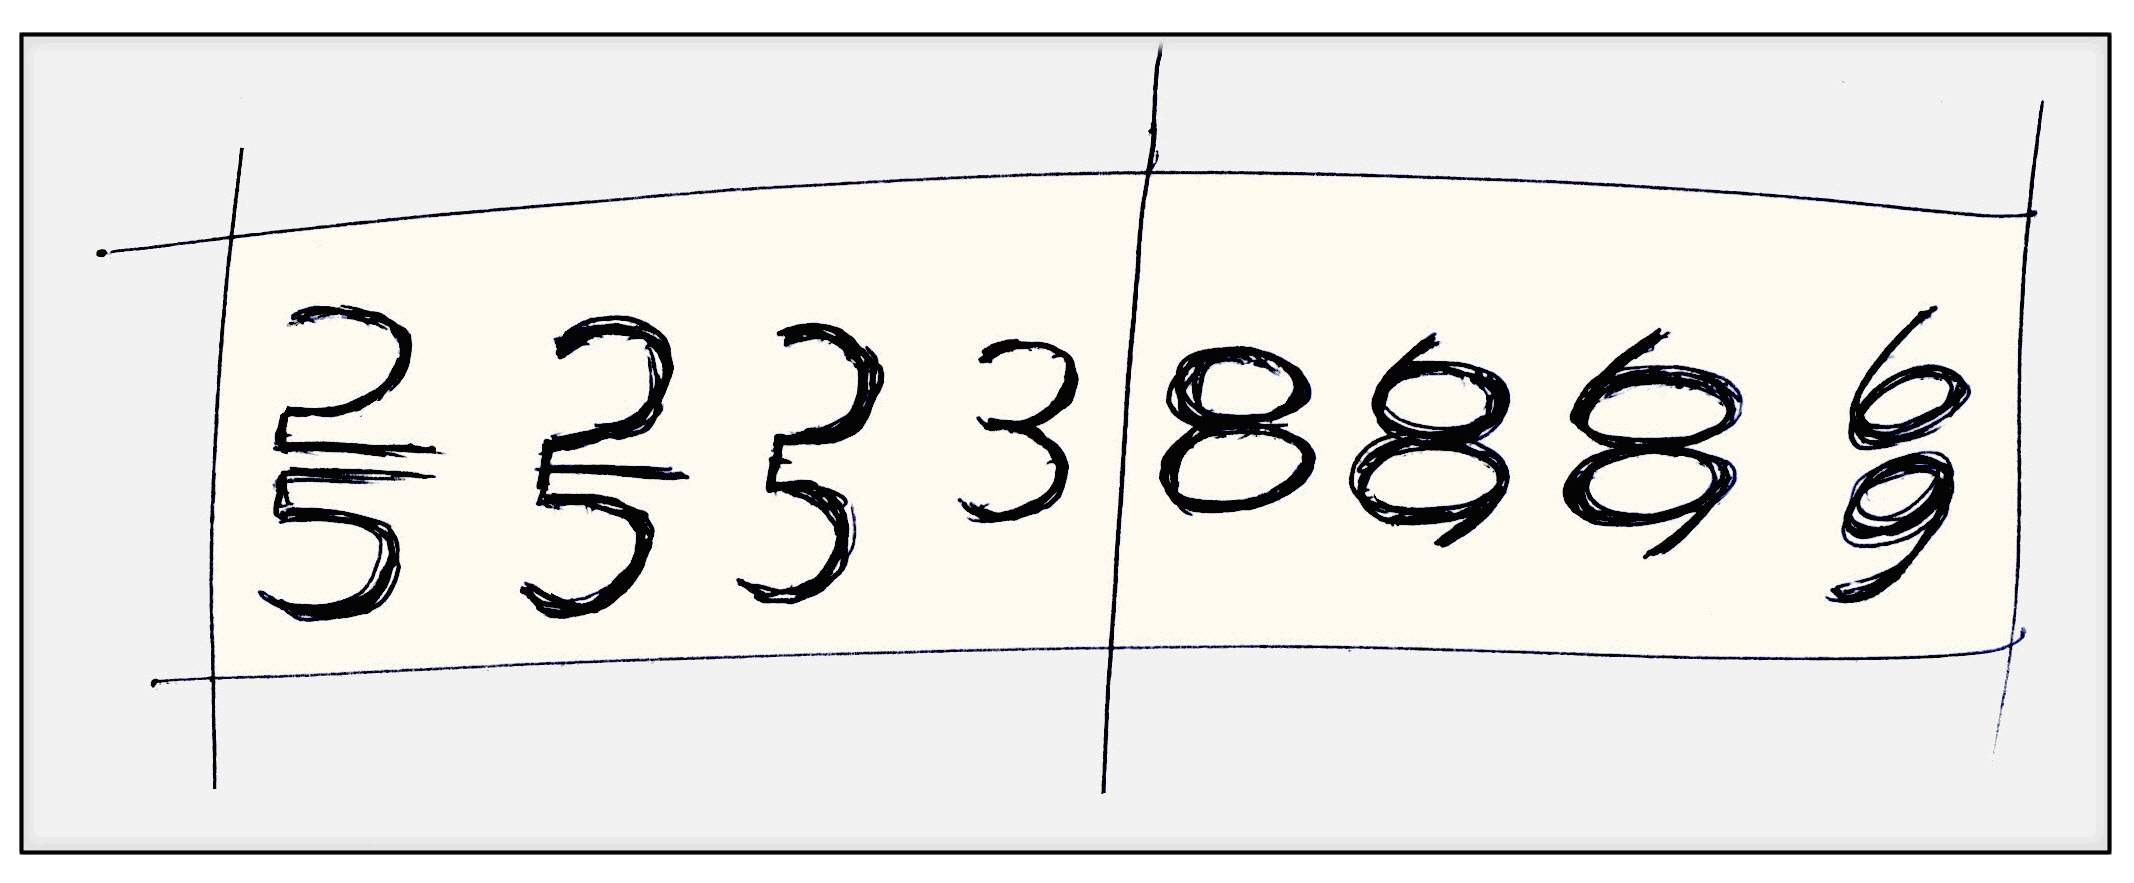 deriving-the-3-and-8